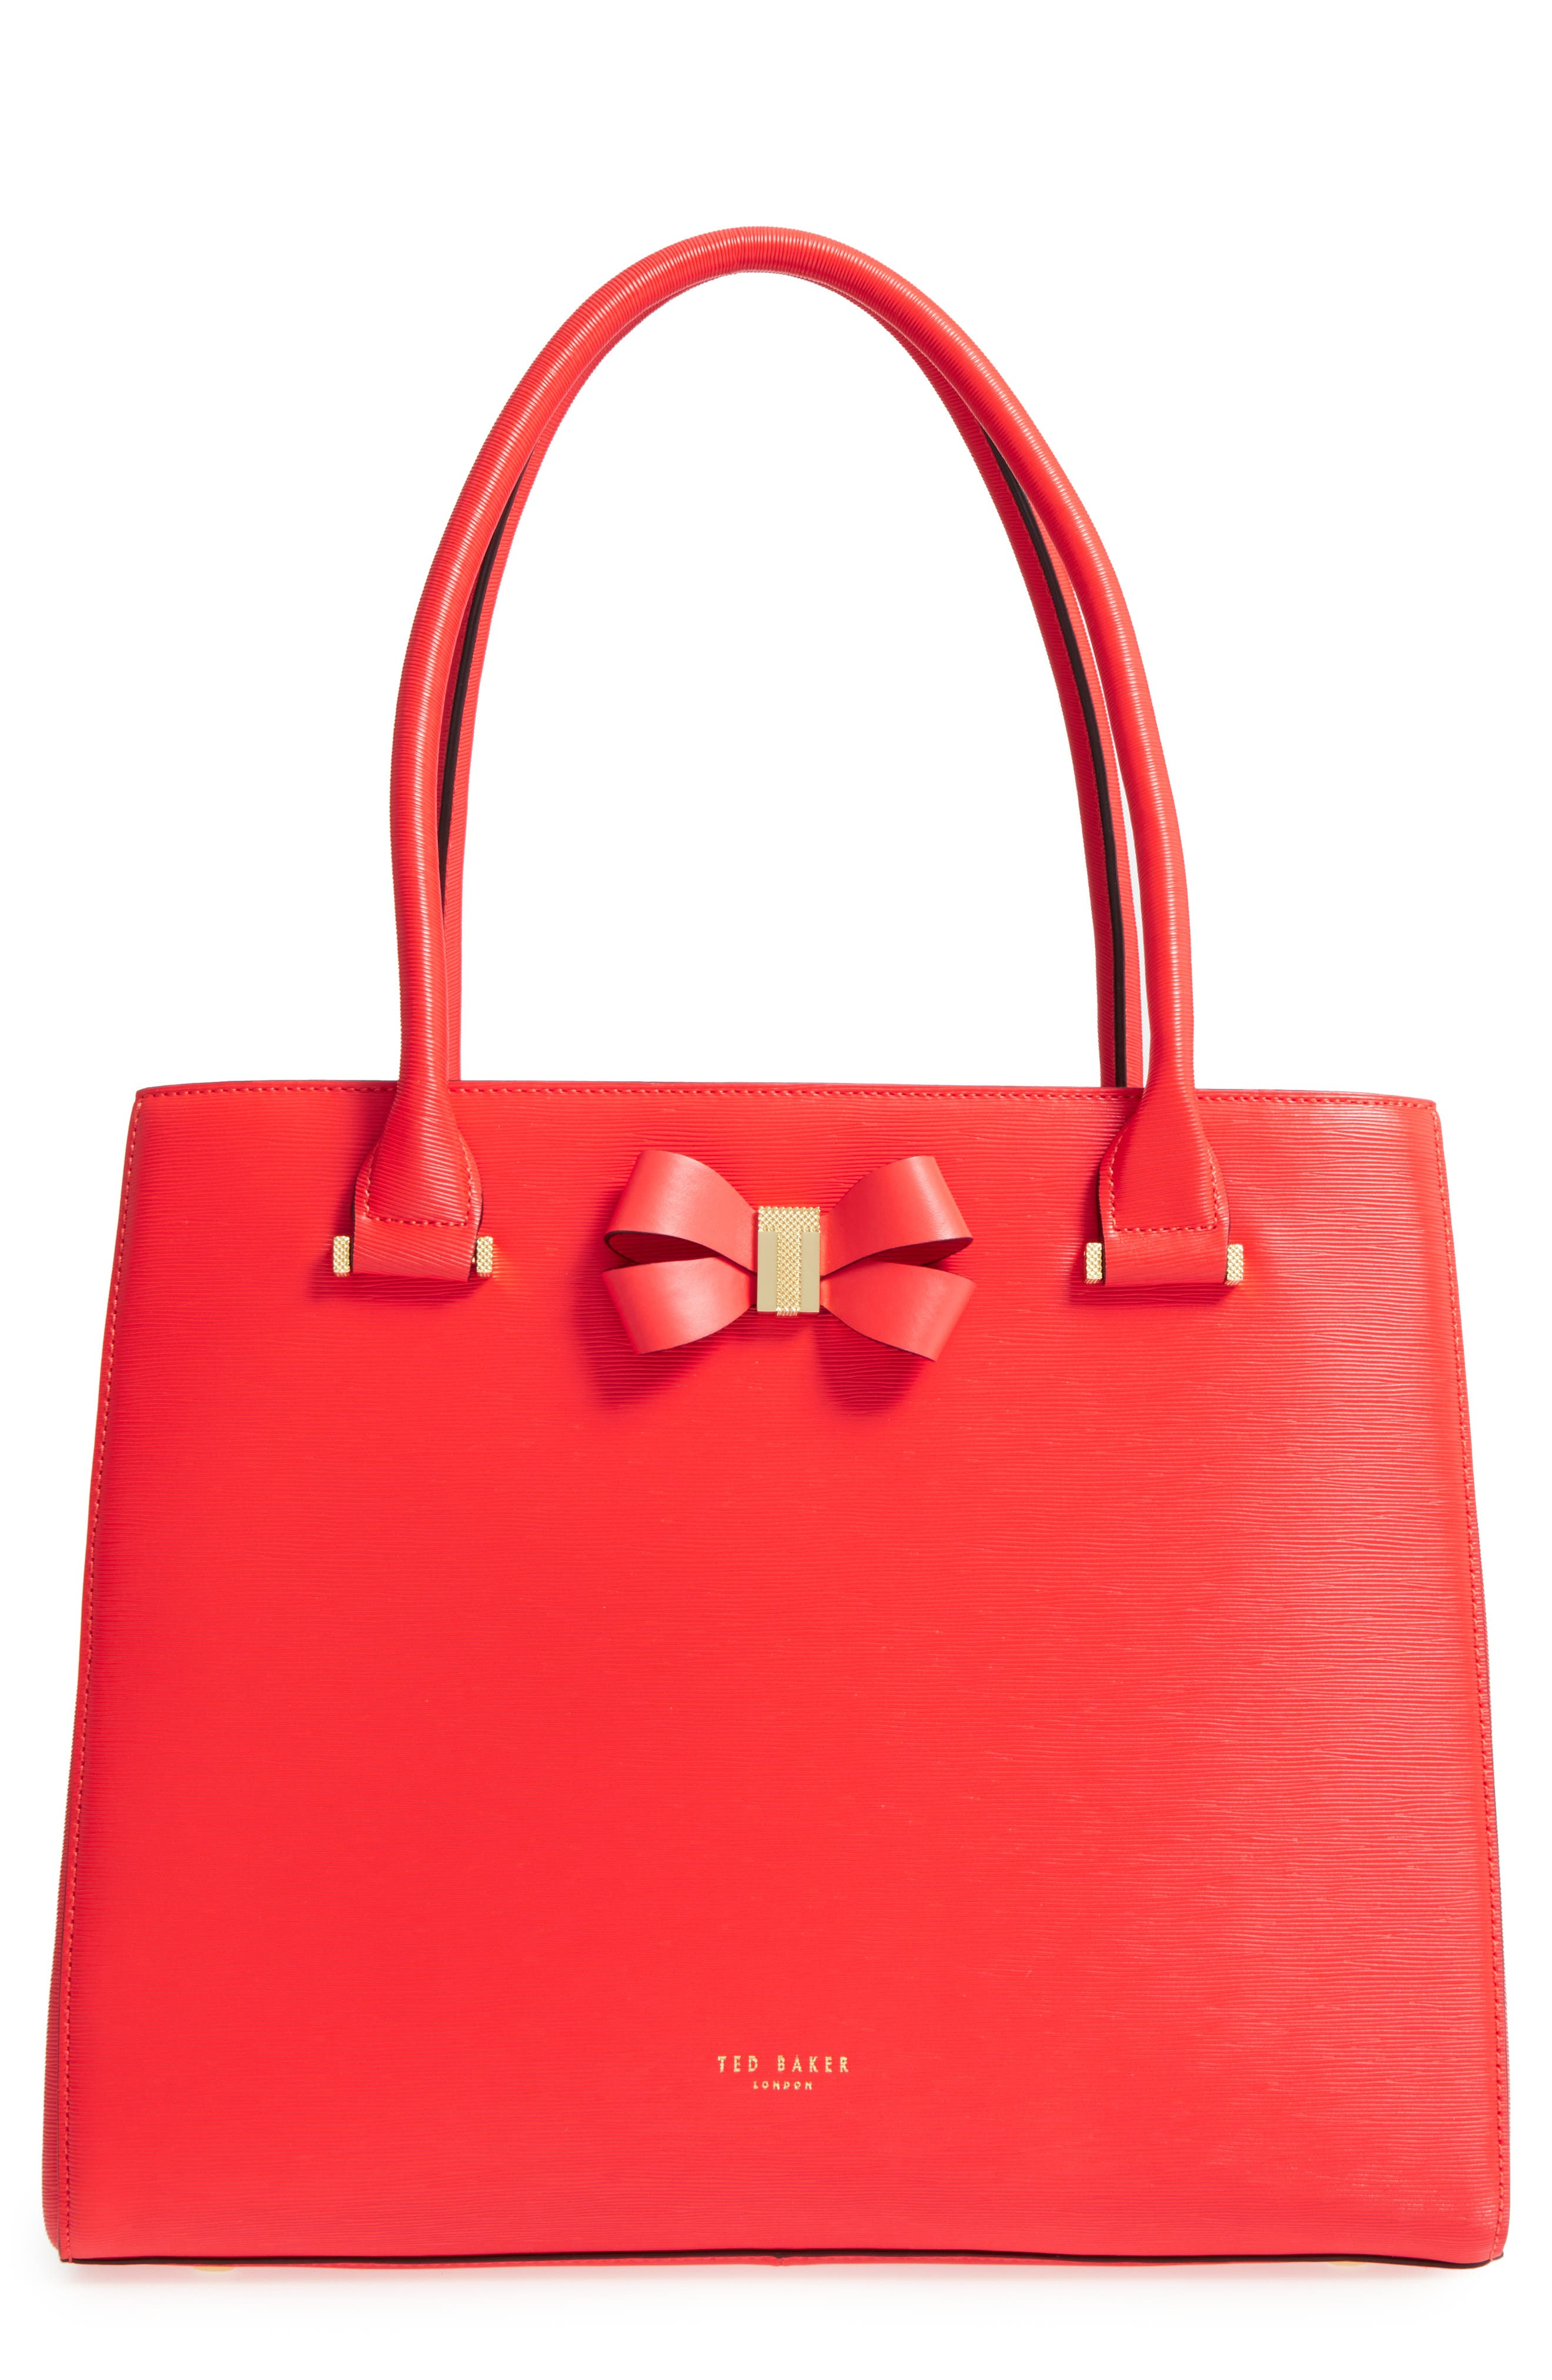 Callaa Bow Leather Shopper,                         Main,                         color, Bright Red